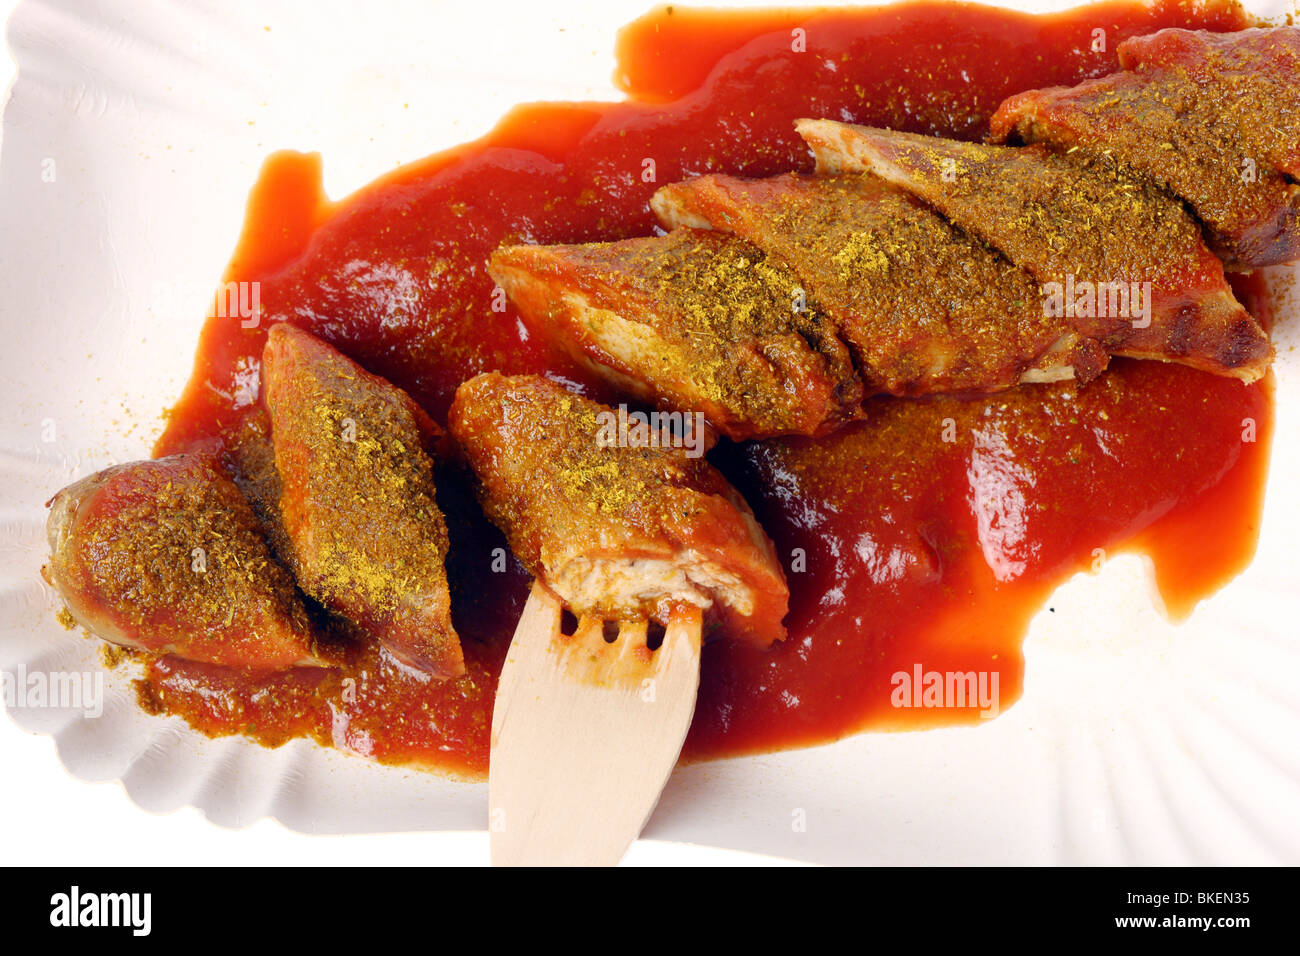 curry sausage, Germany, Europe. - Stock Image